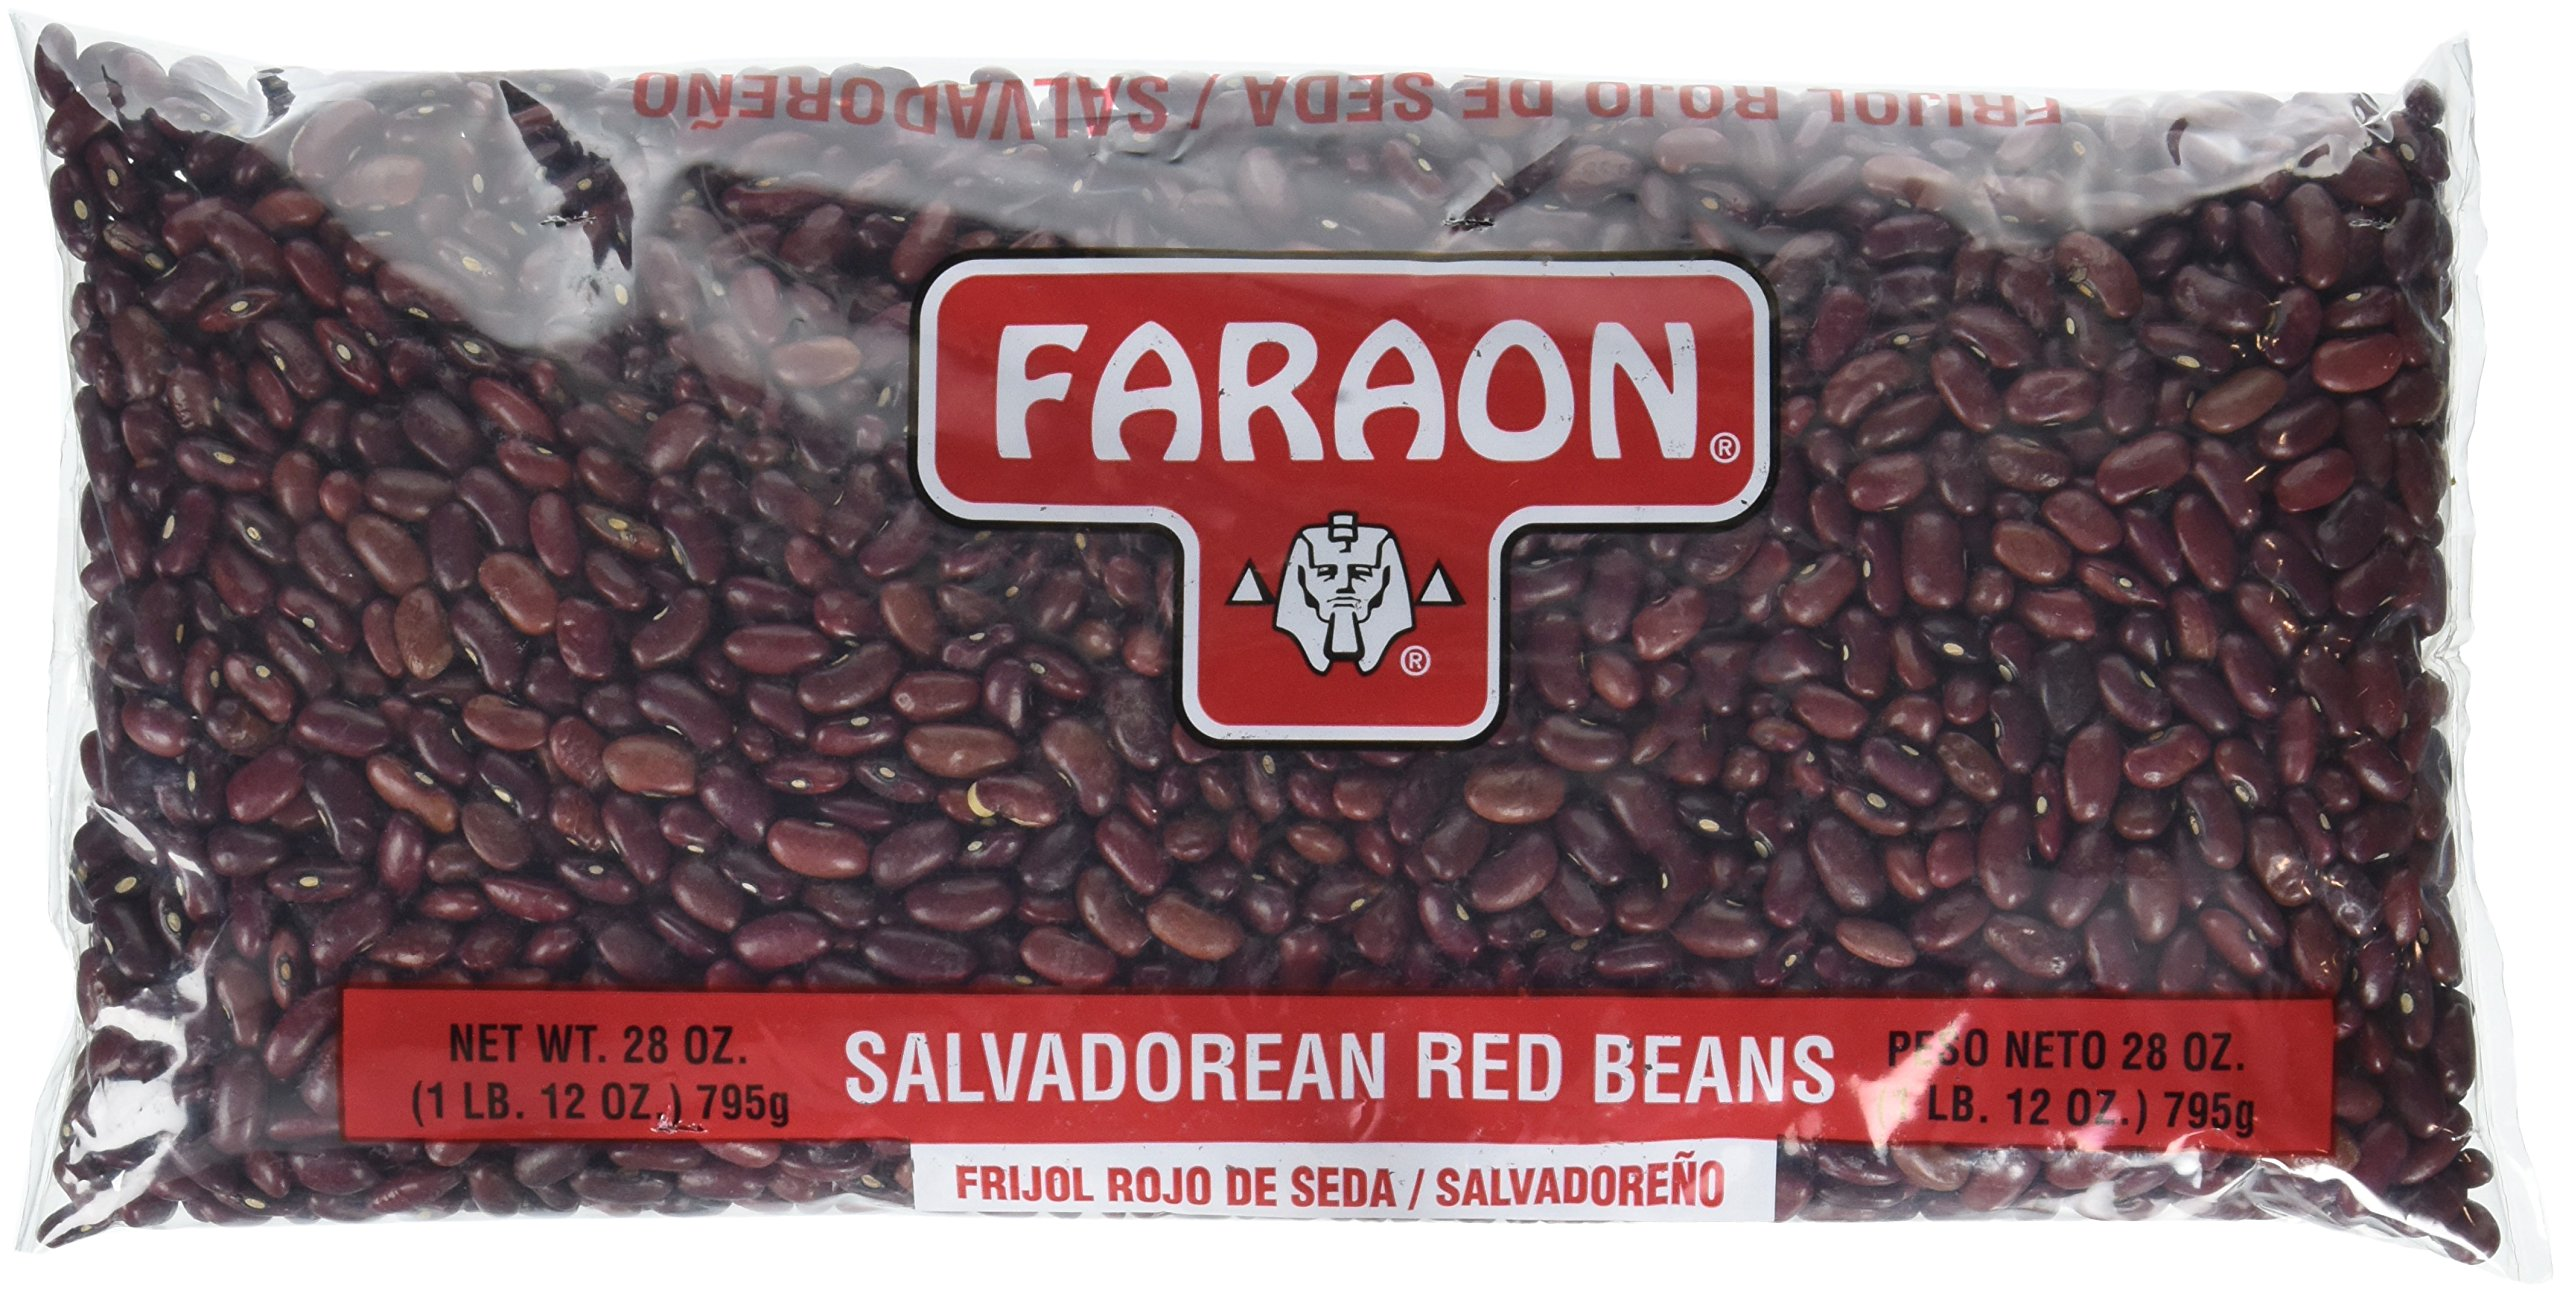 FARAON Seda Small Reds, 28 Ounce (Pack of 12)